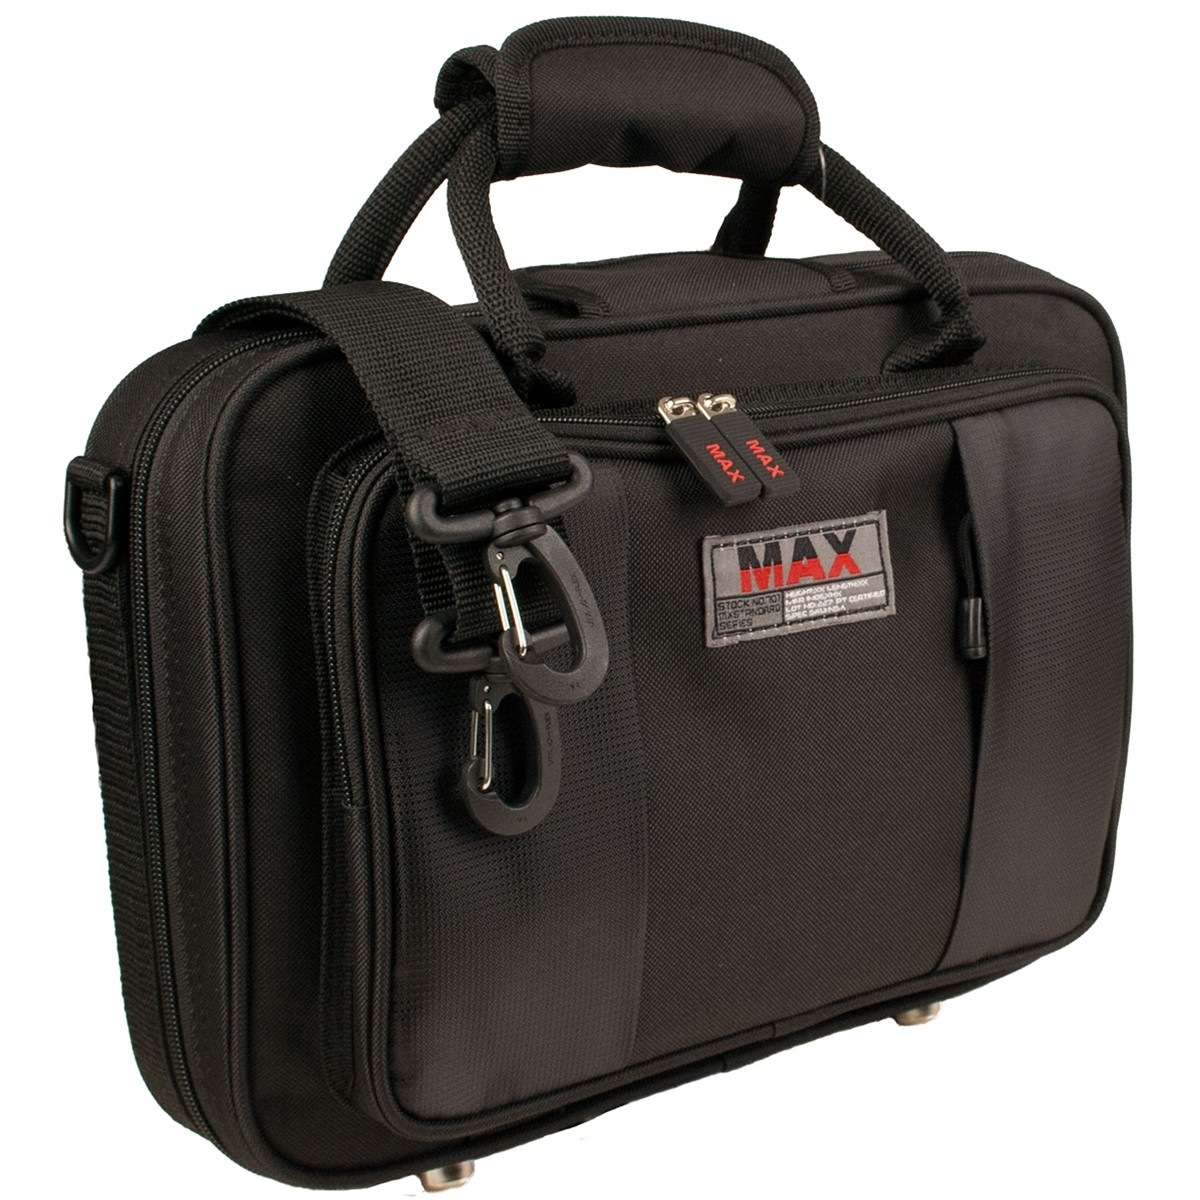 Protec Bb Clarinet MAX Case (Black MX307)